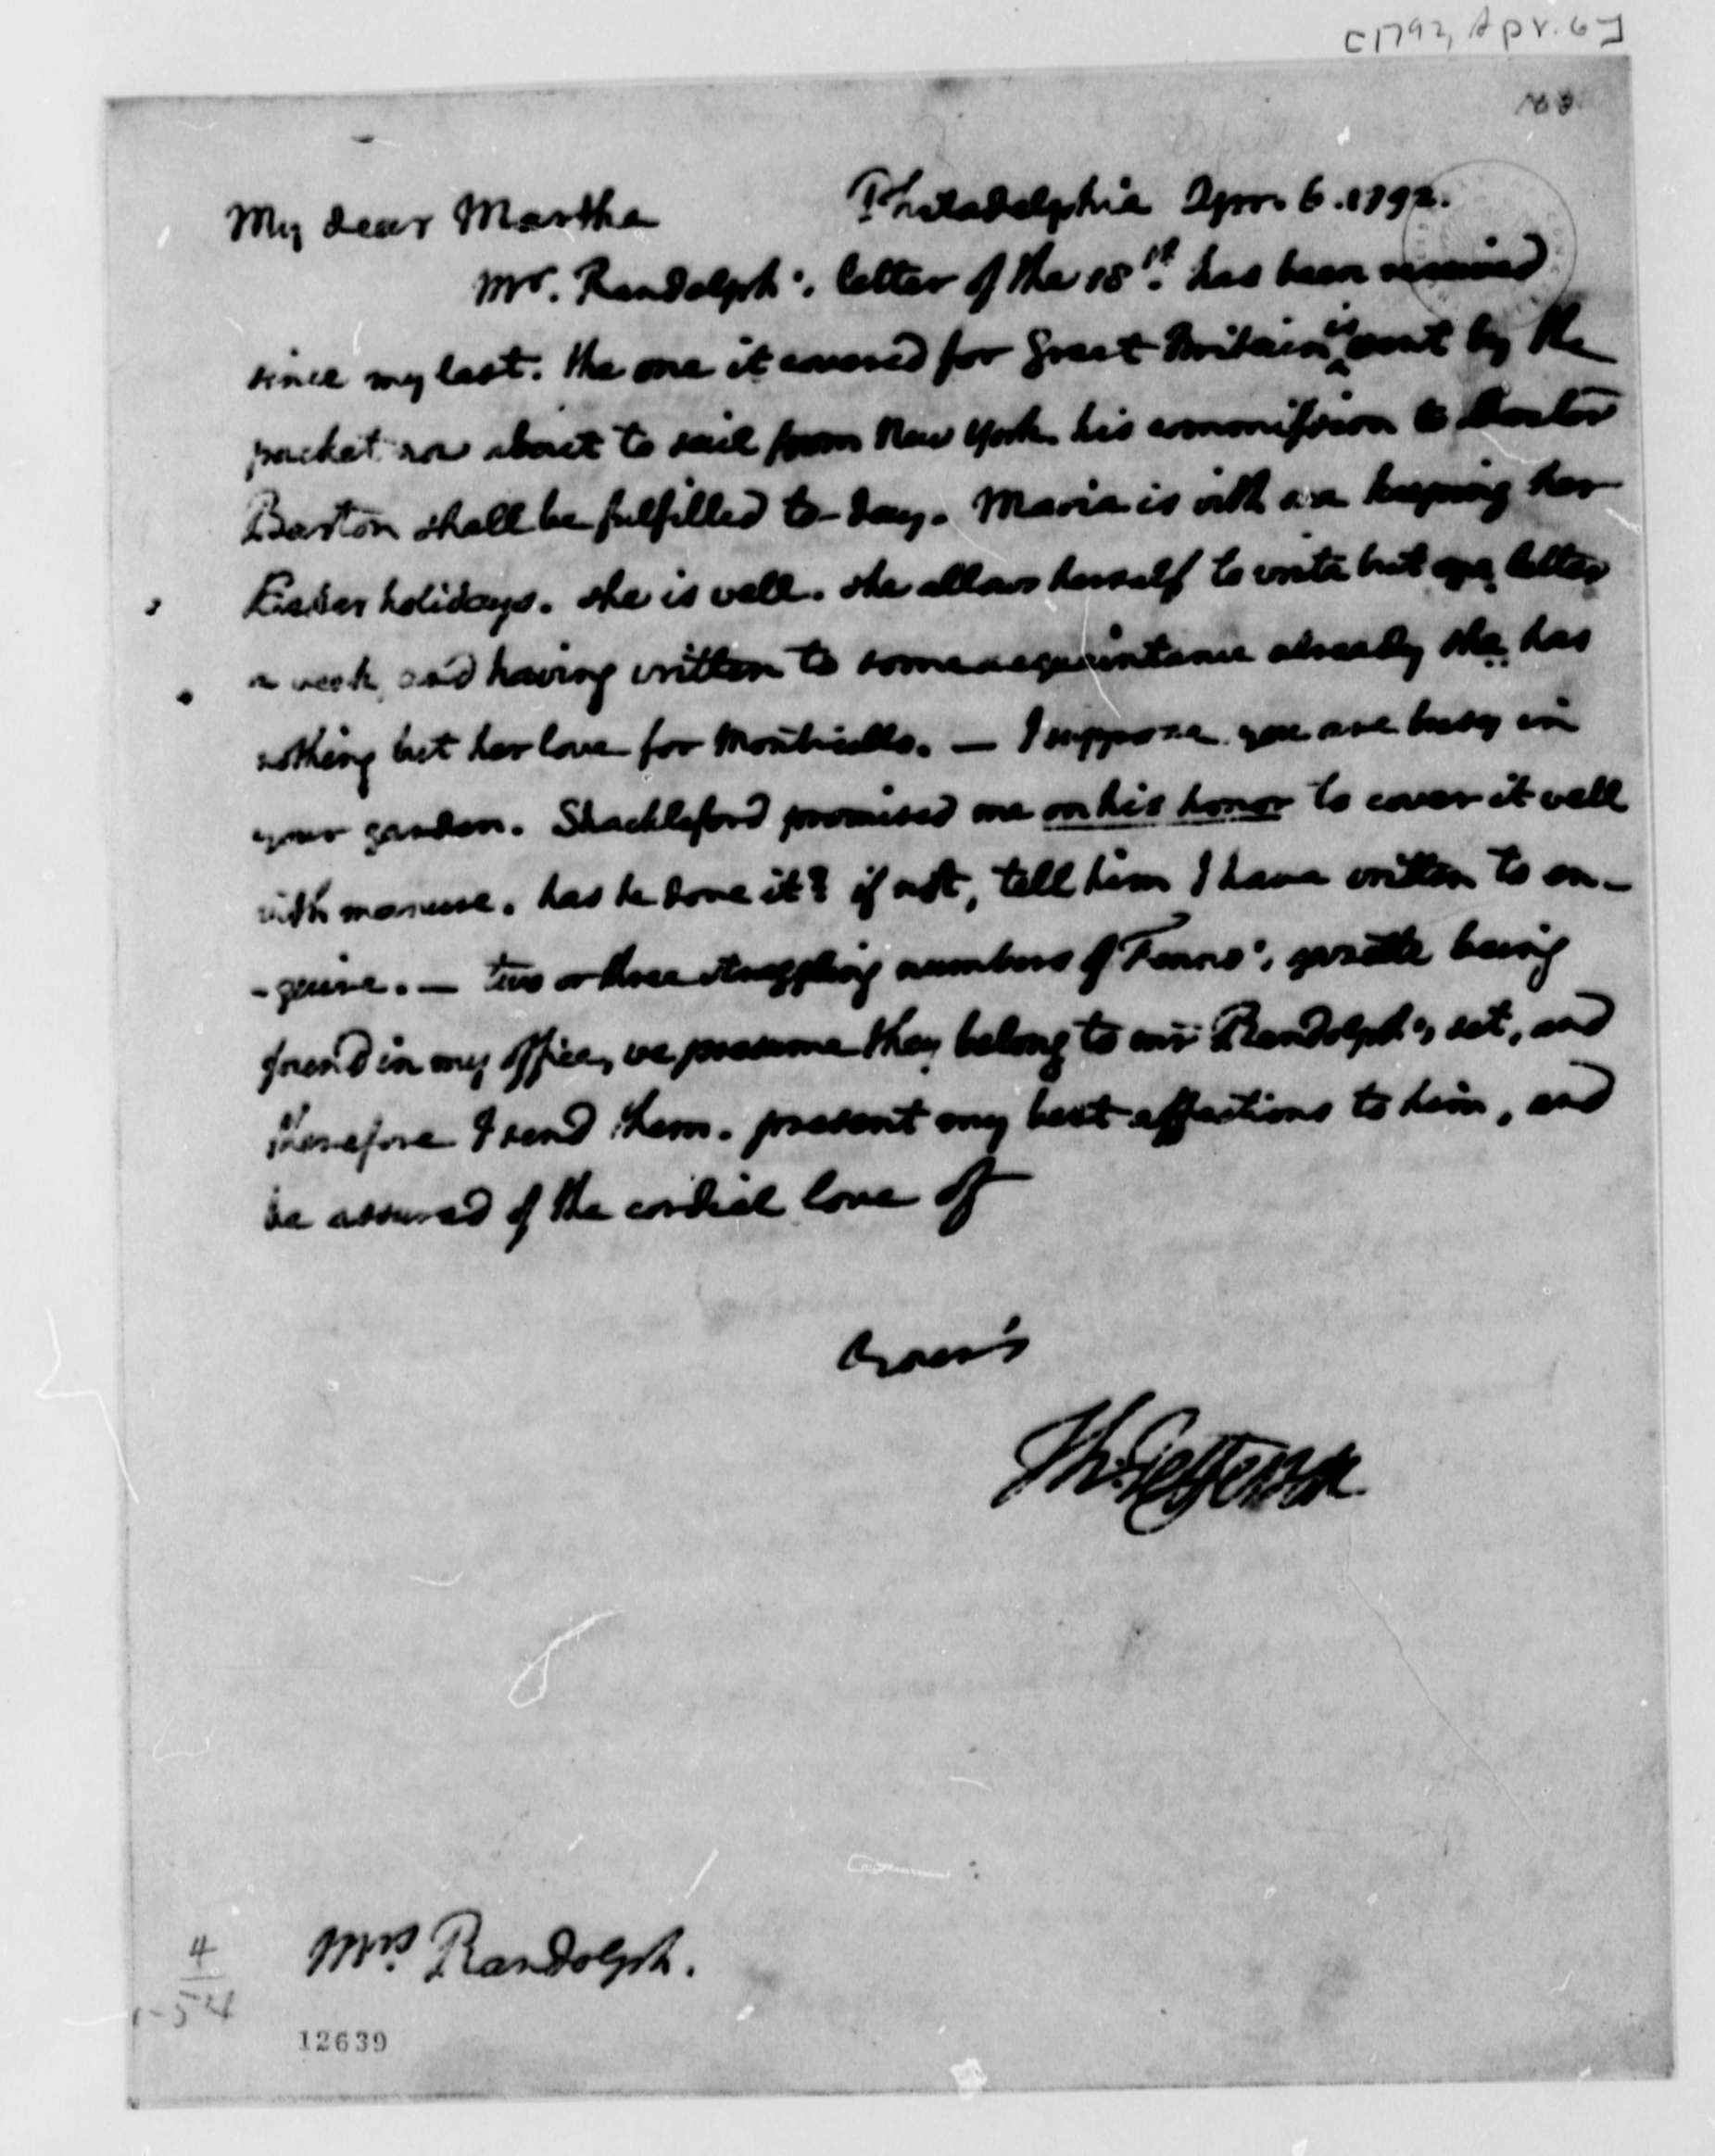 019 Thomas Jefferson Essay Magnificent On Education Questions Outline Full